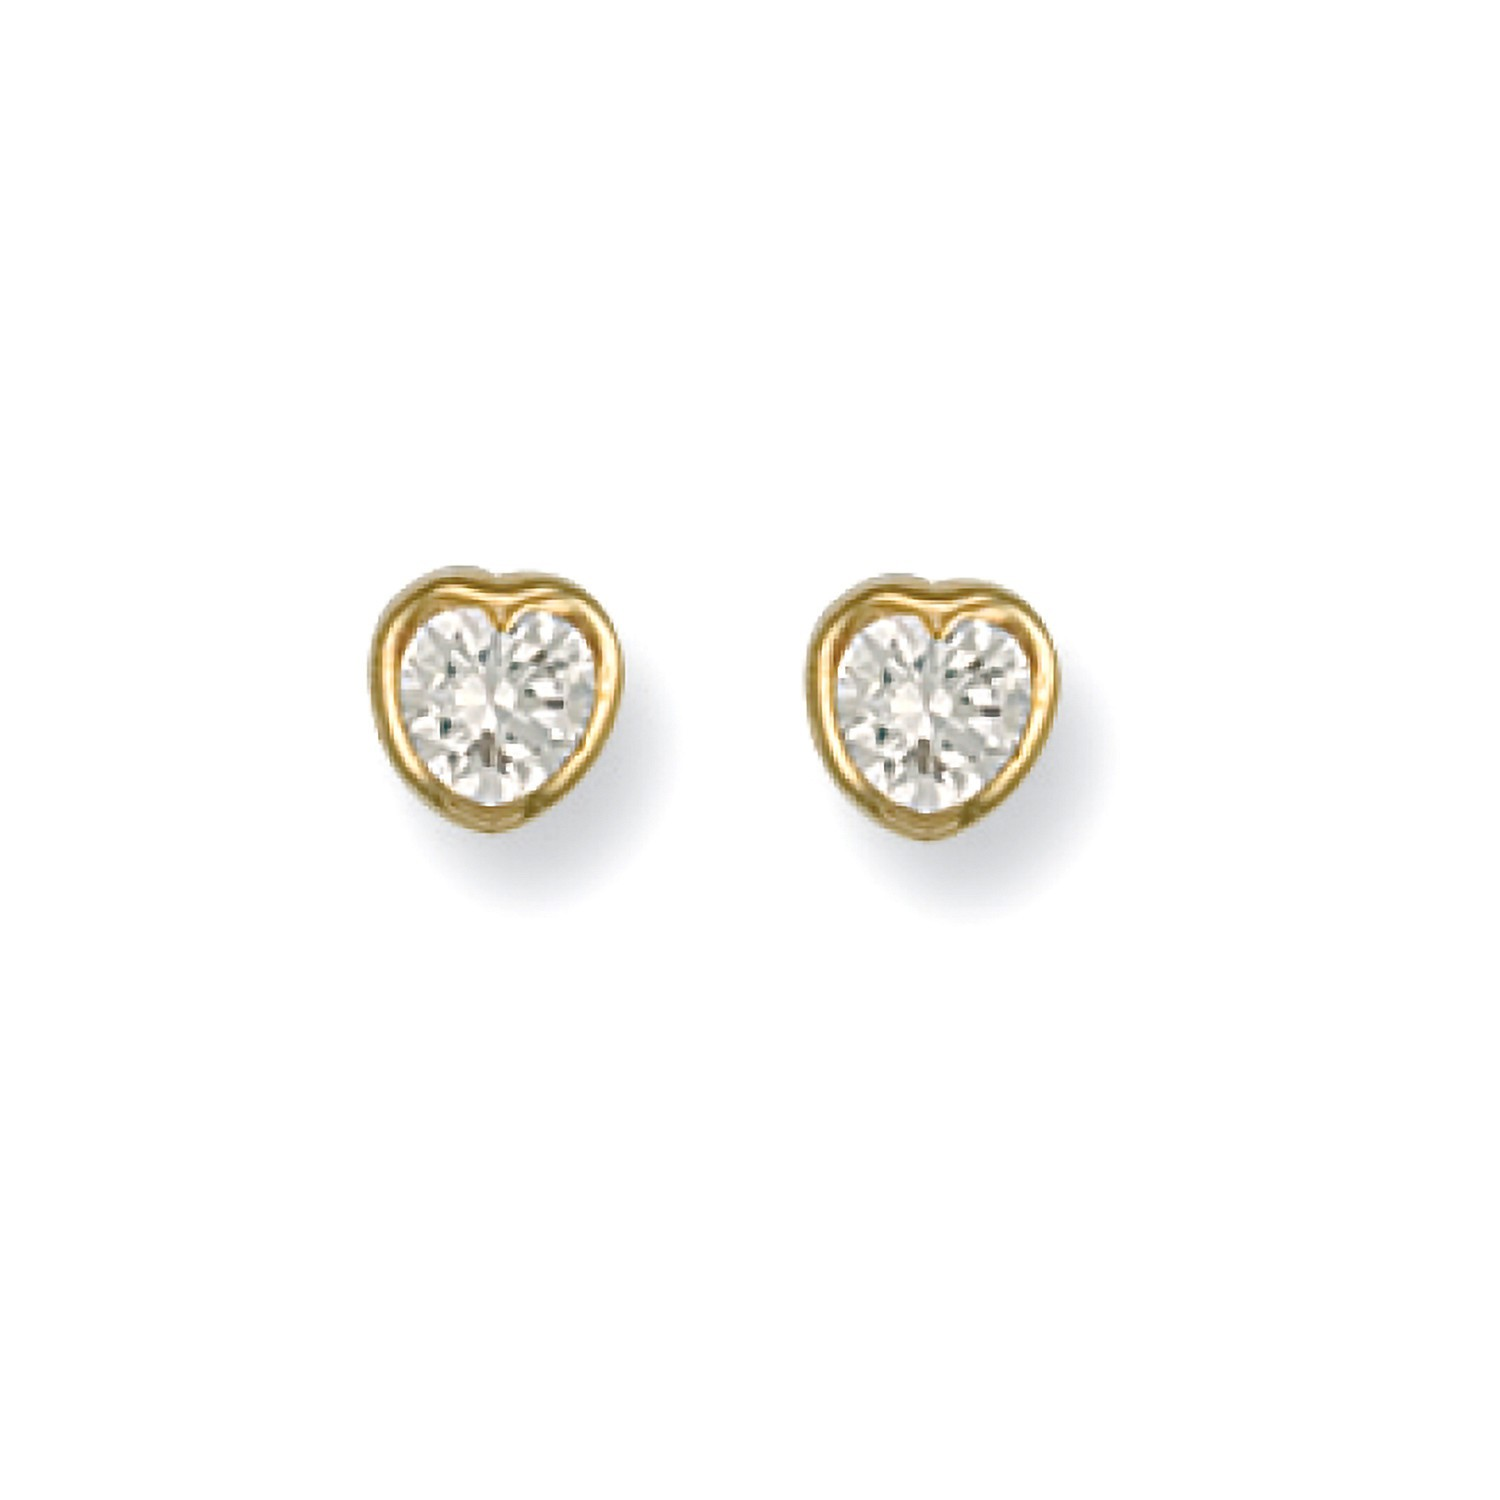 9ct Y/G Rubover Set Heart Shaped Cz Studs